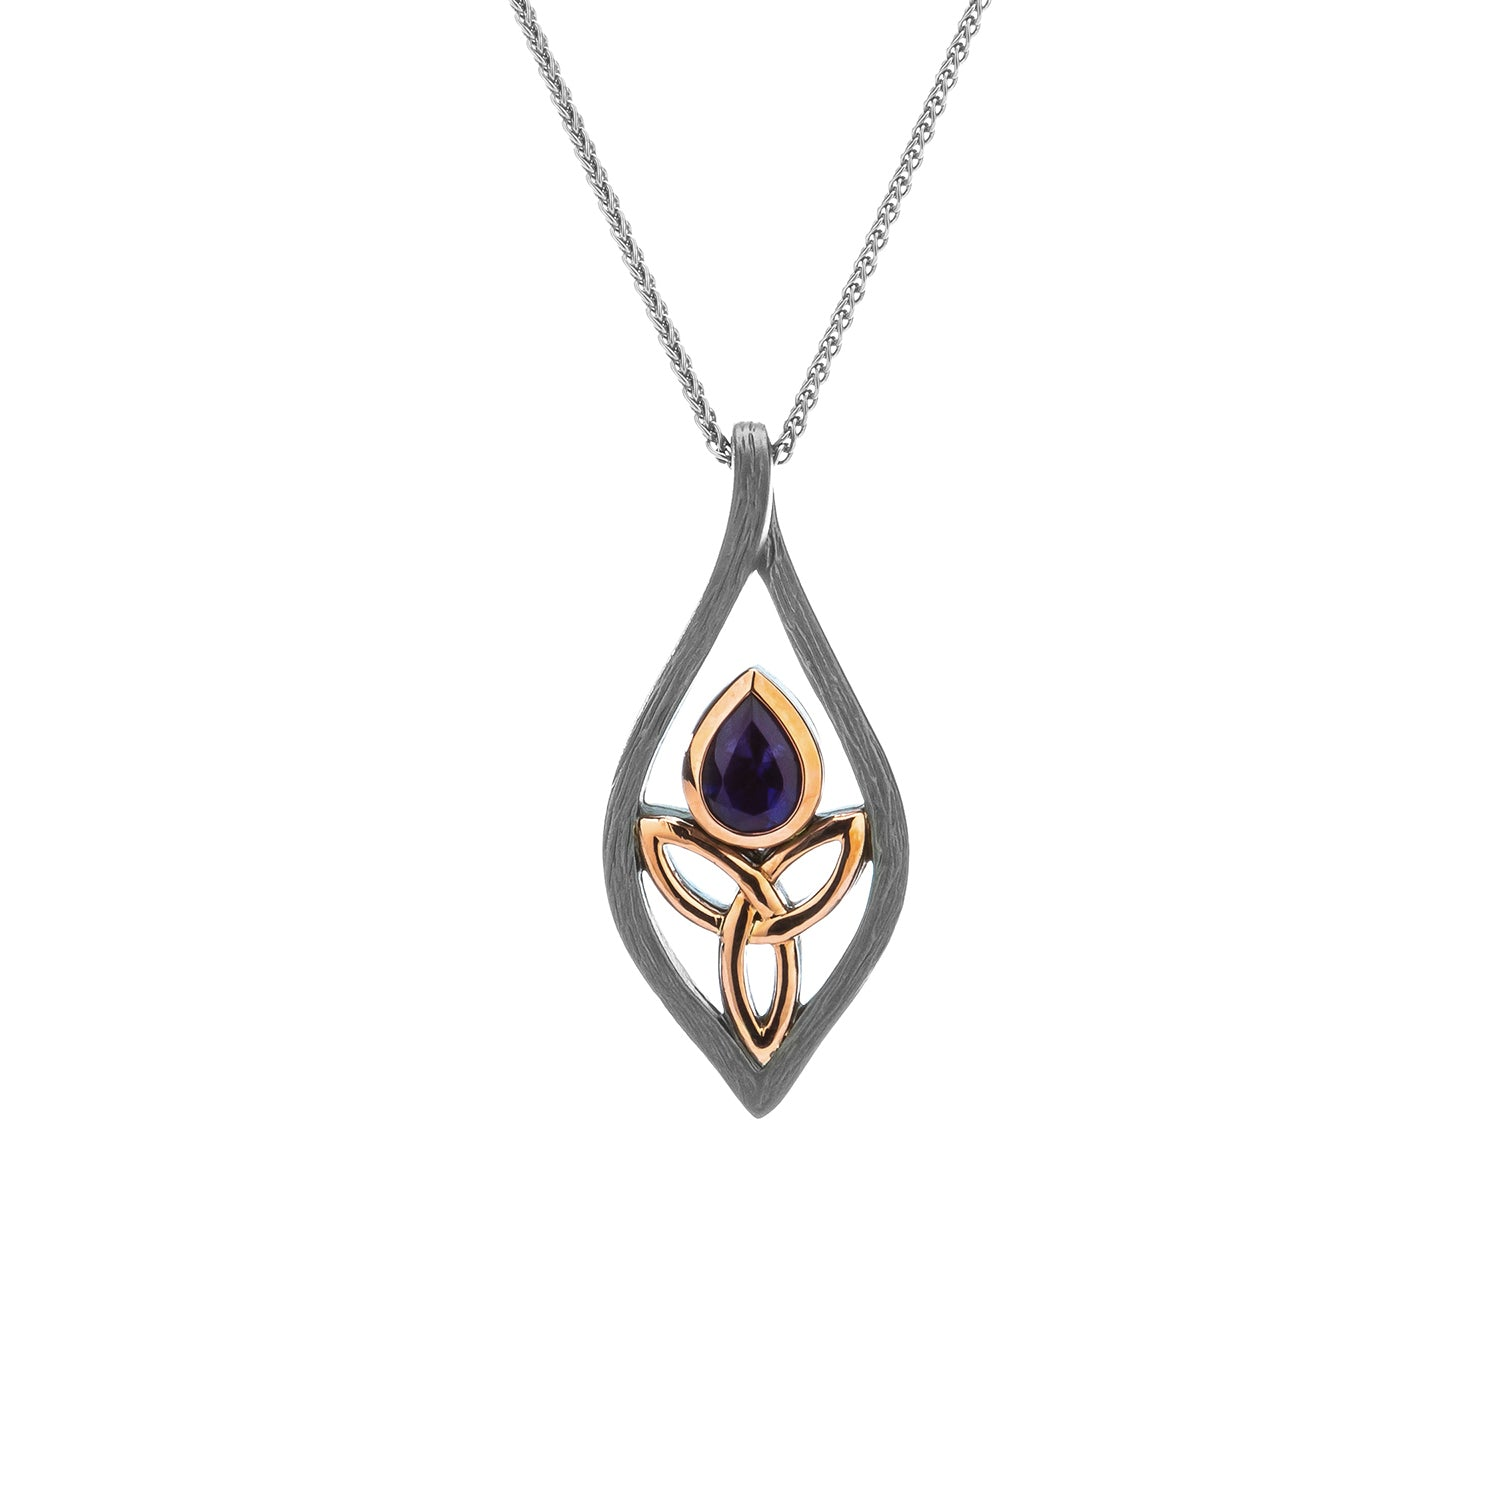 Pendant Ruthenium 10k Rose Iolite Archangel Pendant from welch and company jewelers near syracuse ny